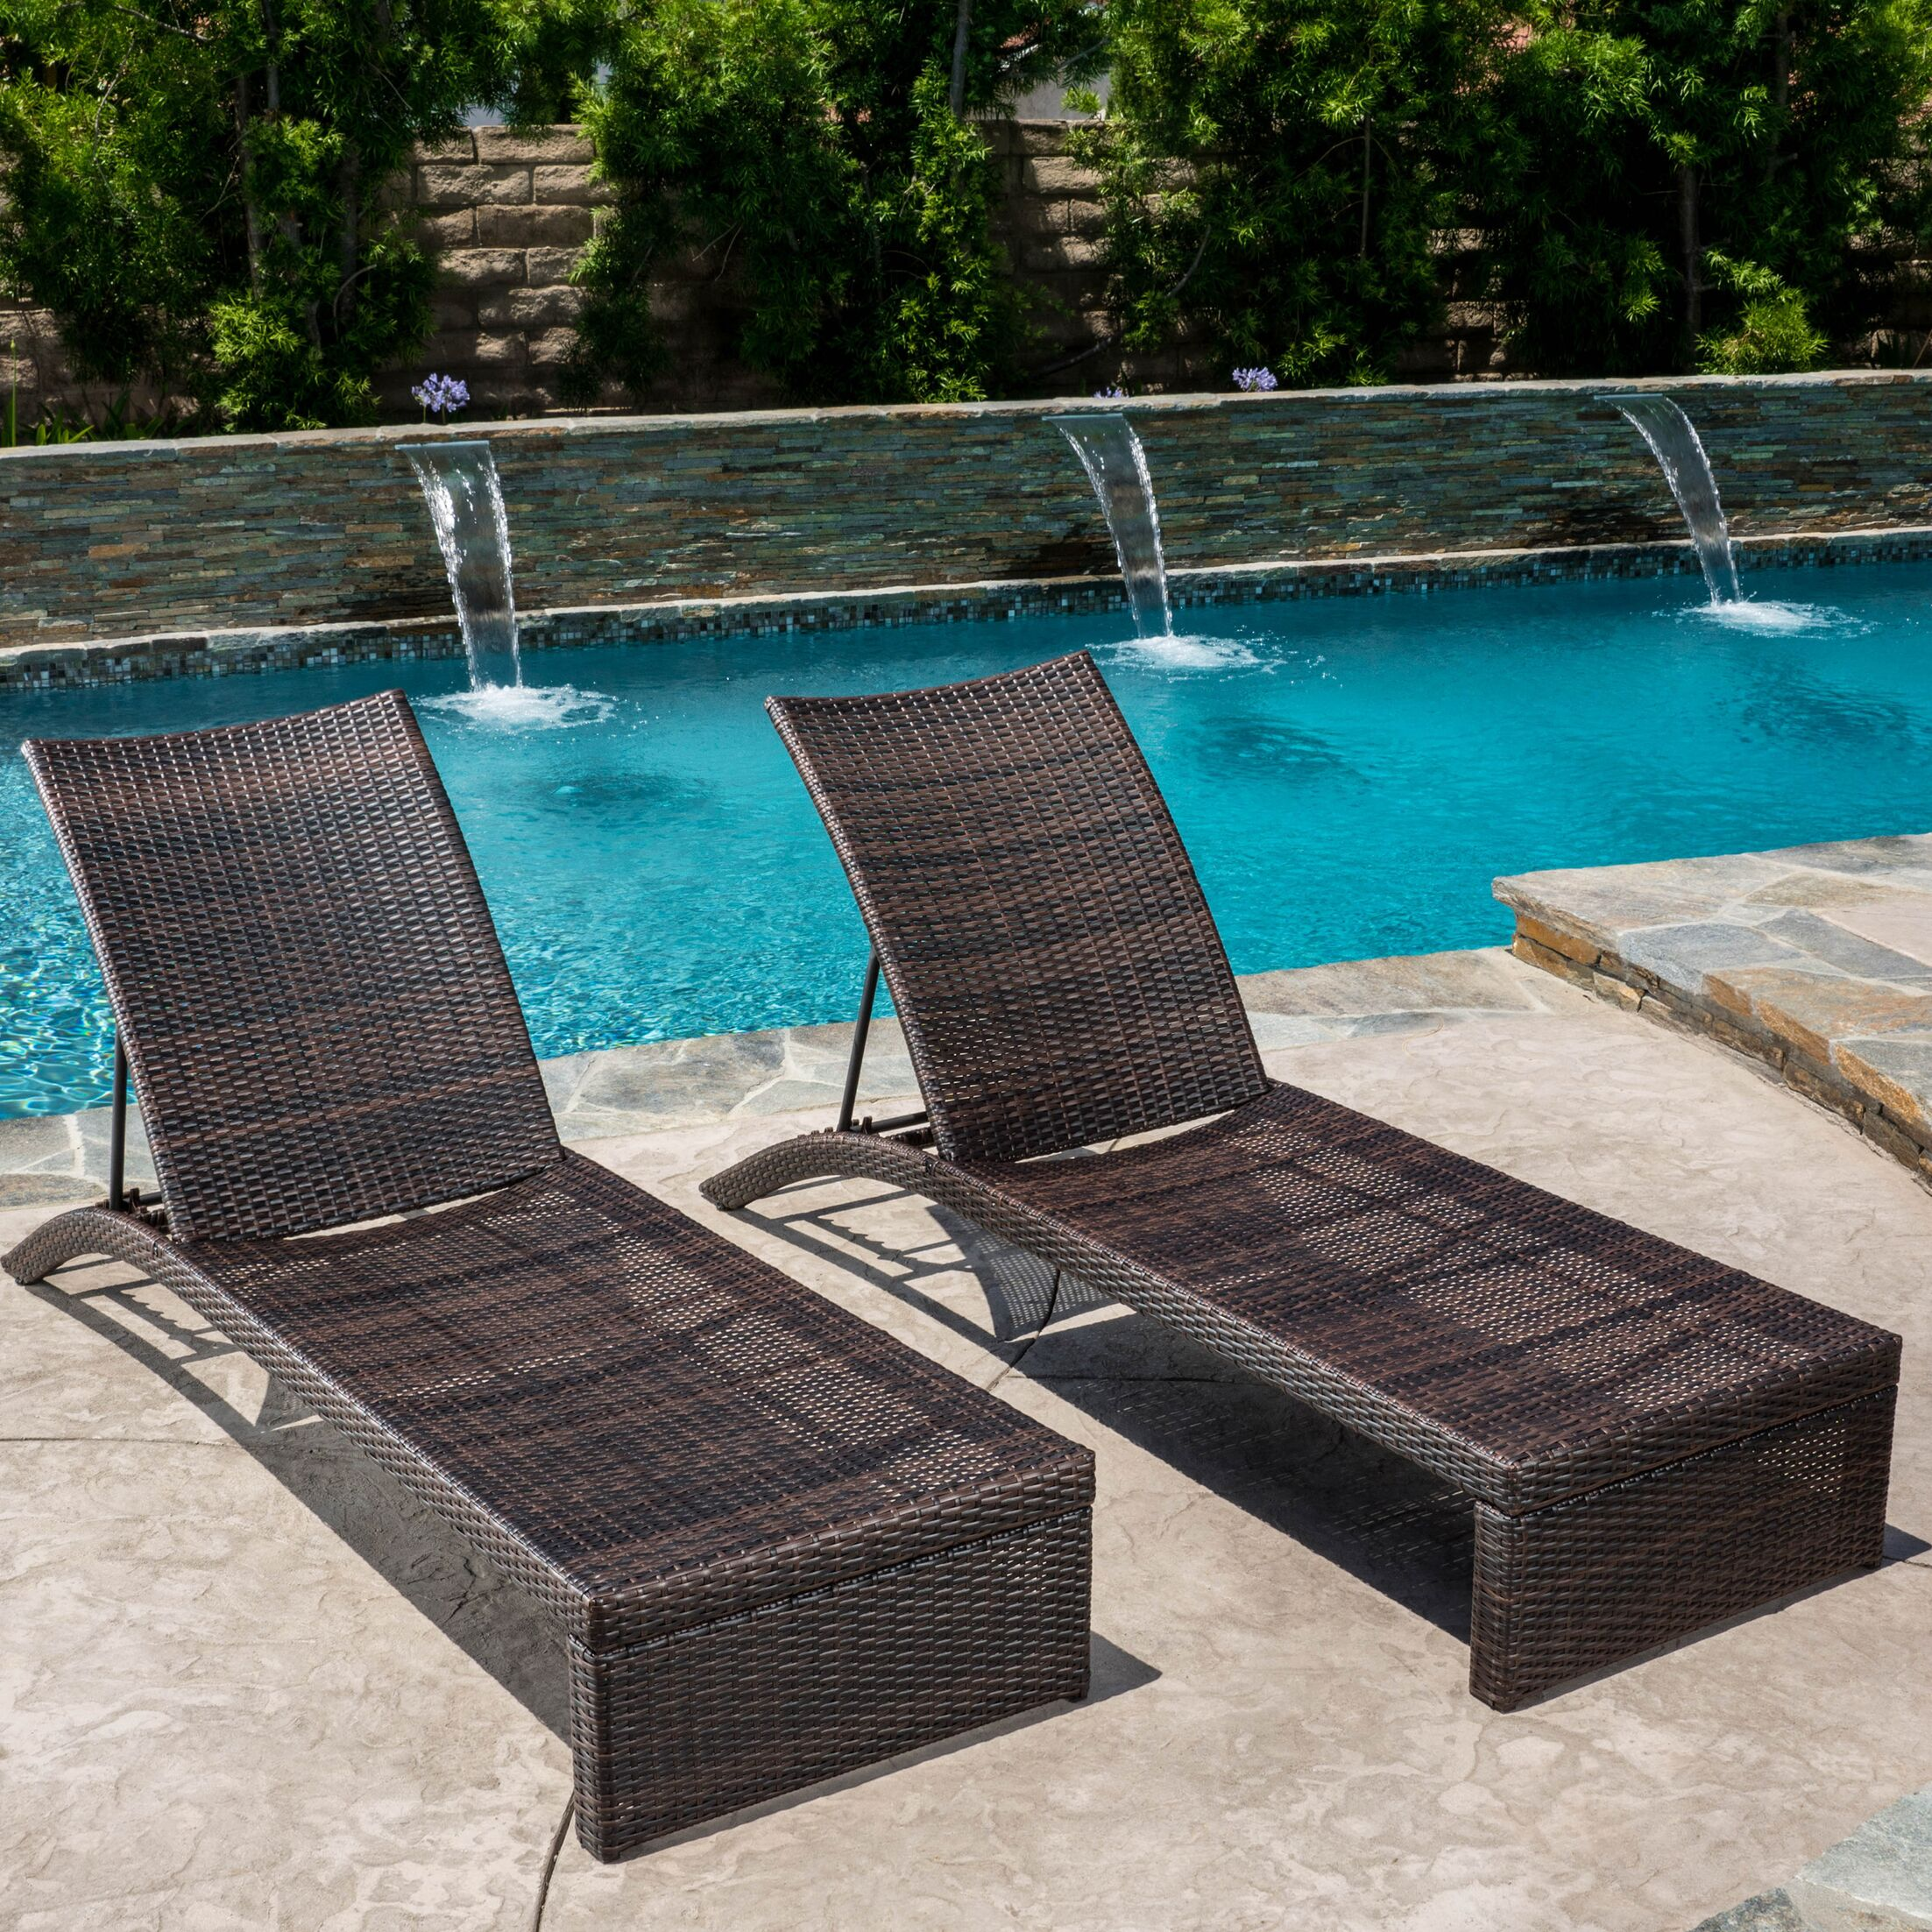 Acrion Reclining Chaise Lounge